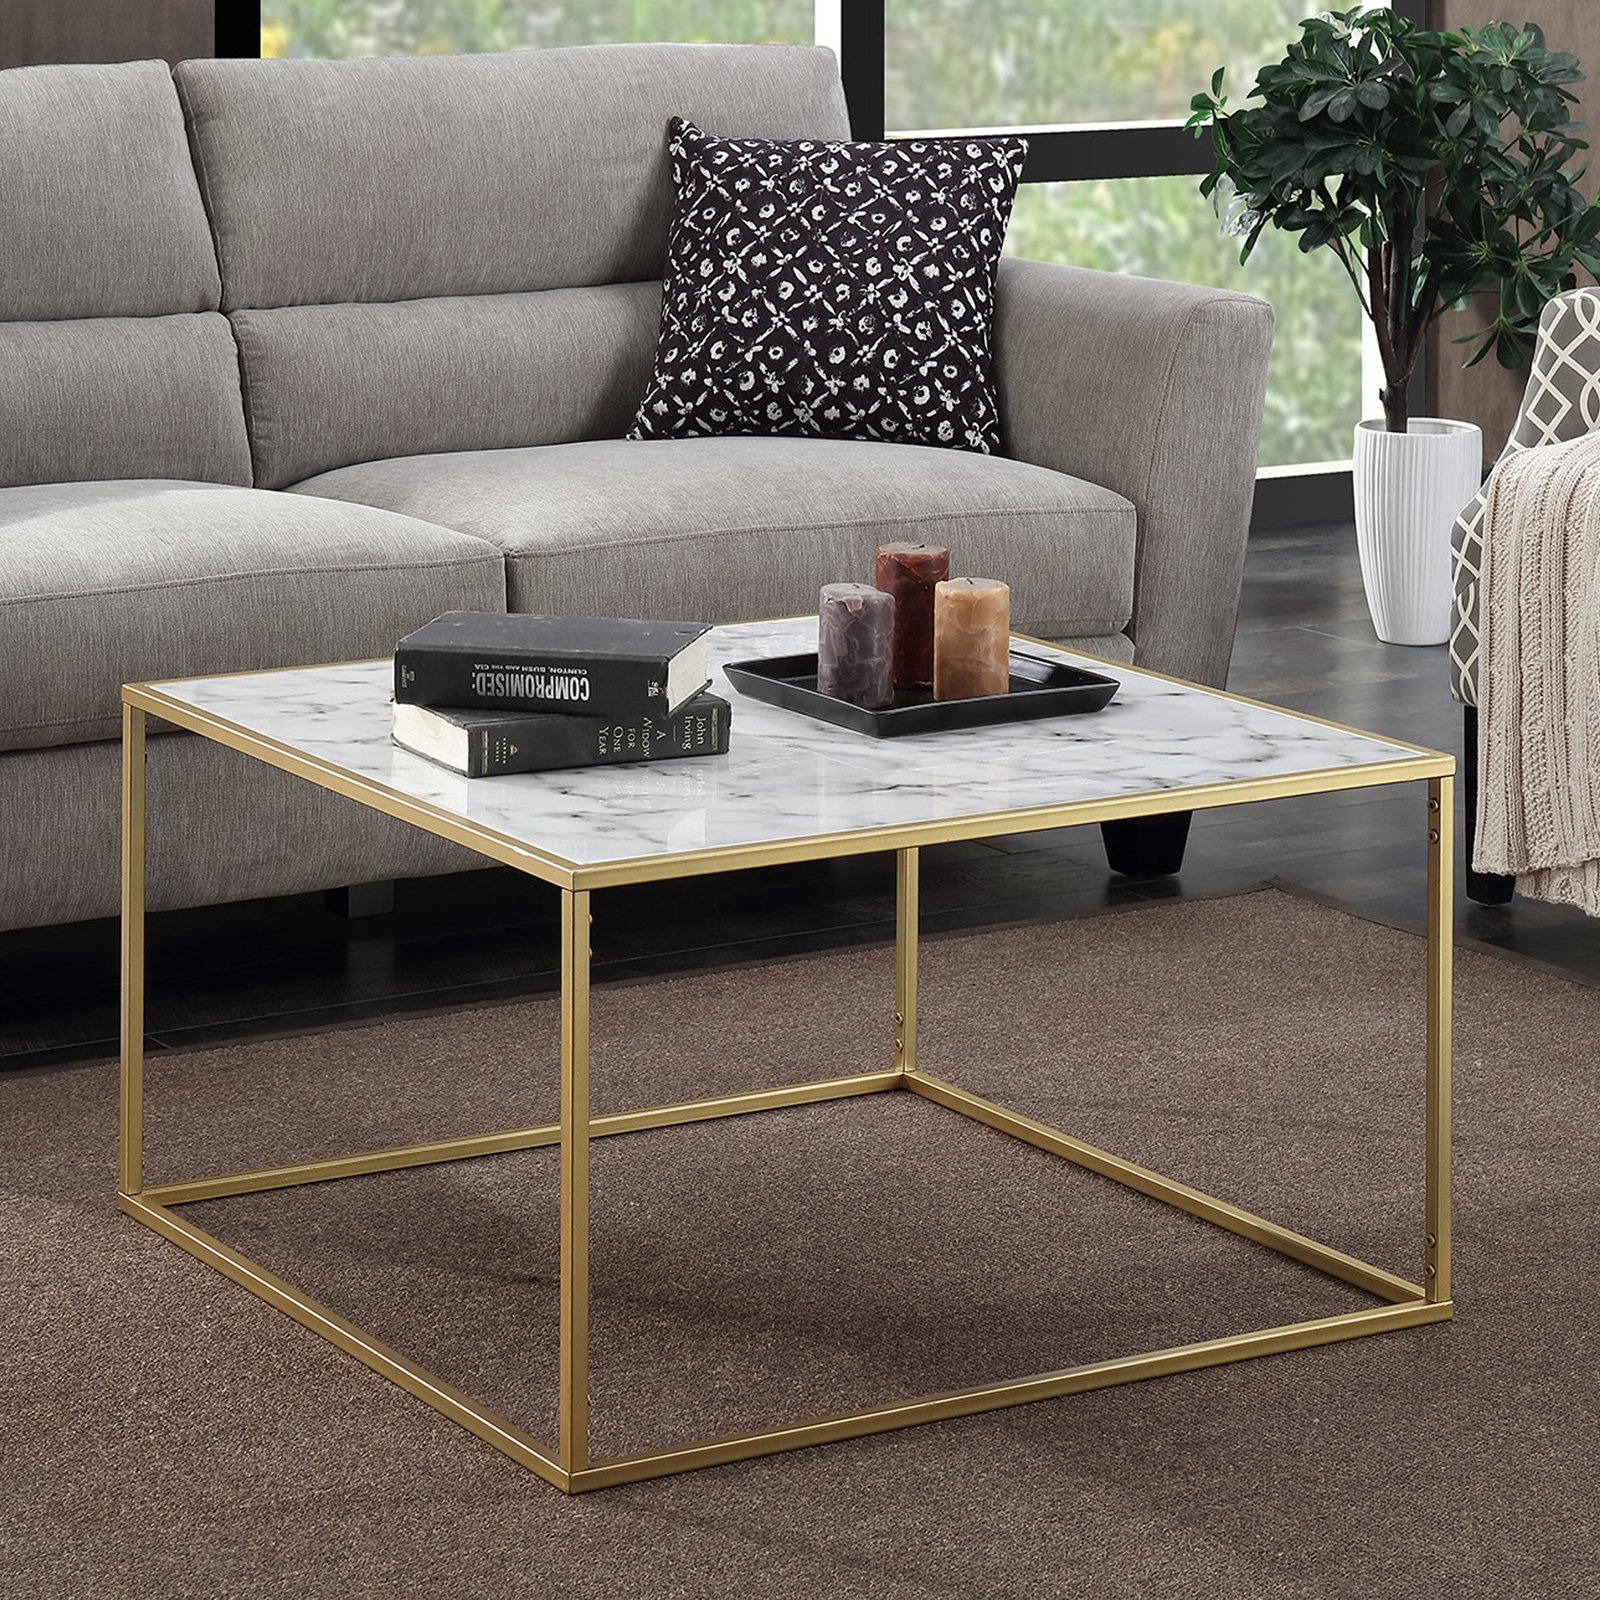 Convenience Concepts Gold Coast Faux Marble Coffee Table by Convenience Concepts